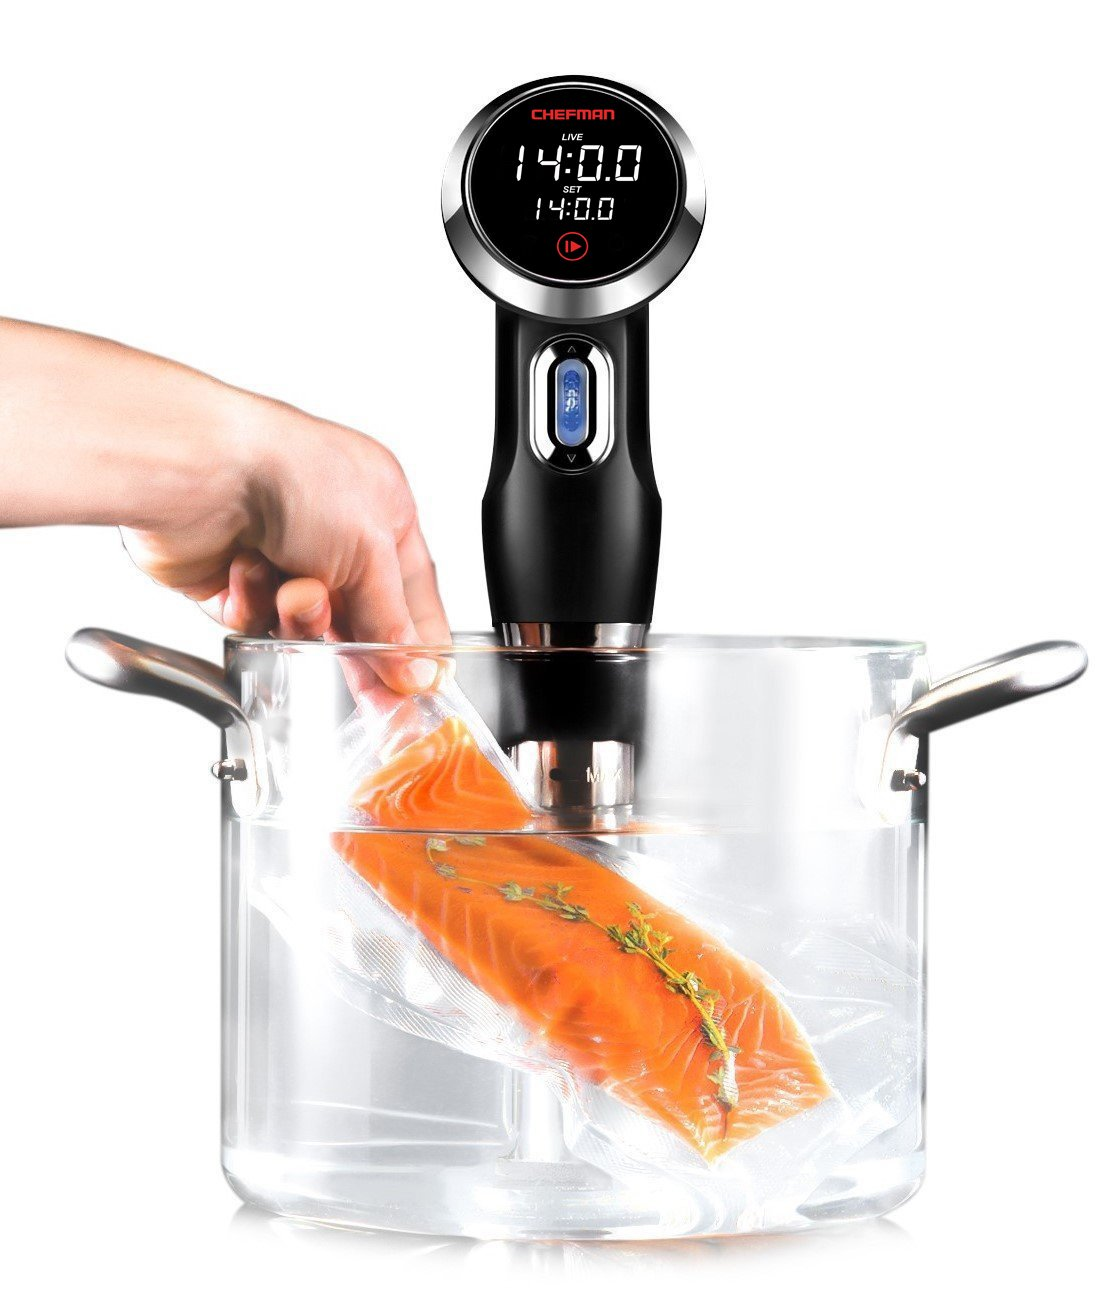 Chefman Sous Vide Immersion Circulator w/Precise Temperature Programmable Digital Touch Screen Display and Easy to Use Controls, Black